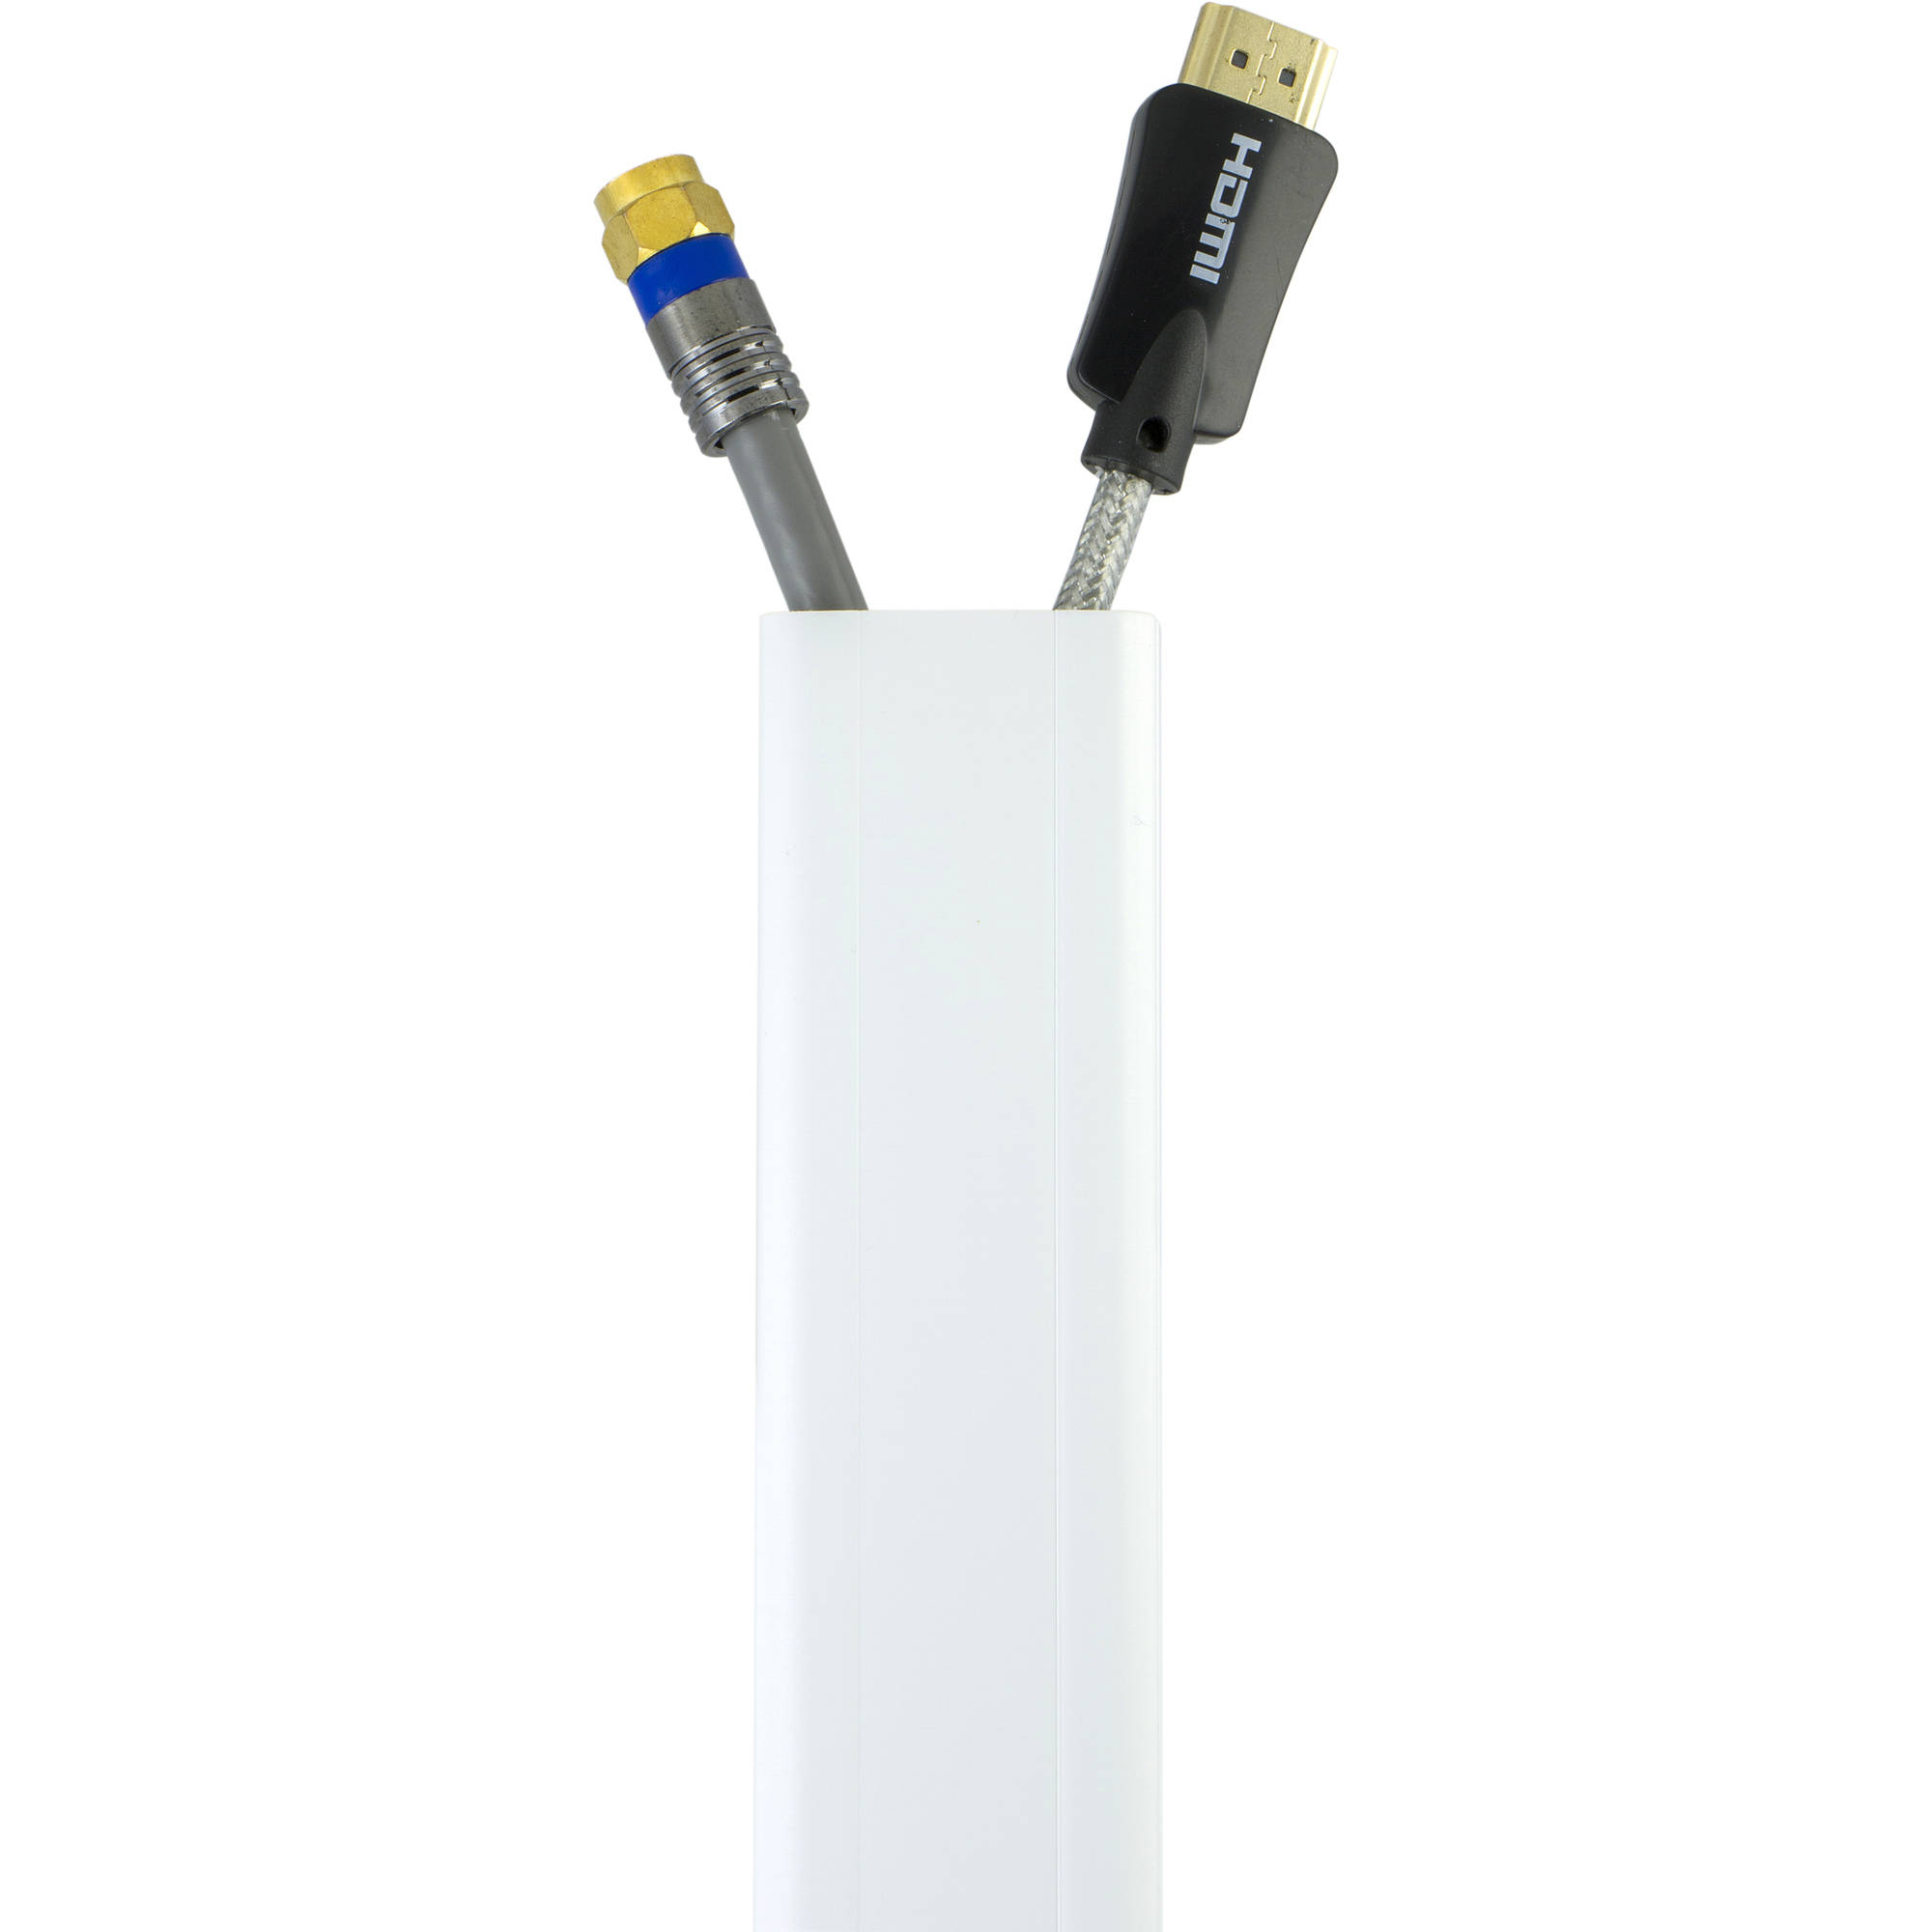 Power Gear CableNeat Cable Cover, 4-Pack, White, 33636 - Walmart.com